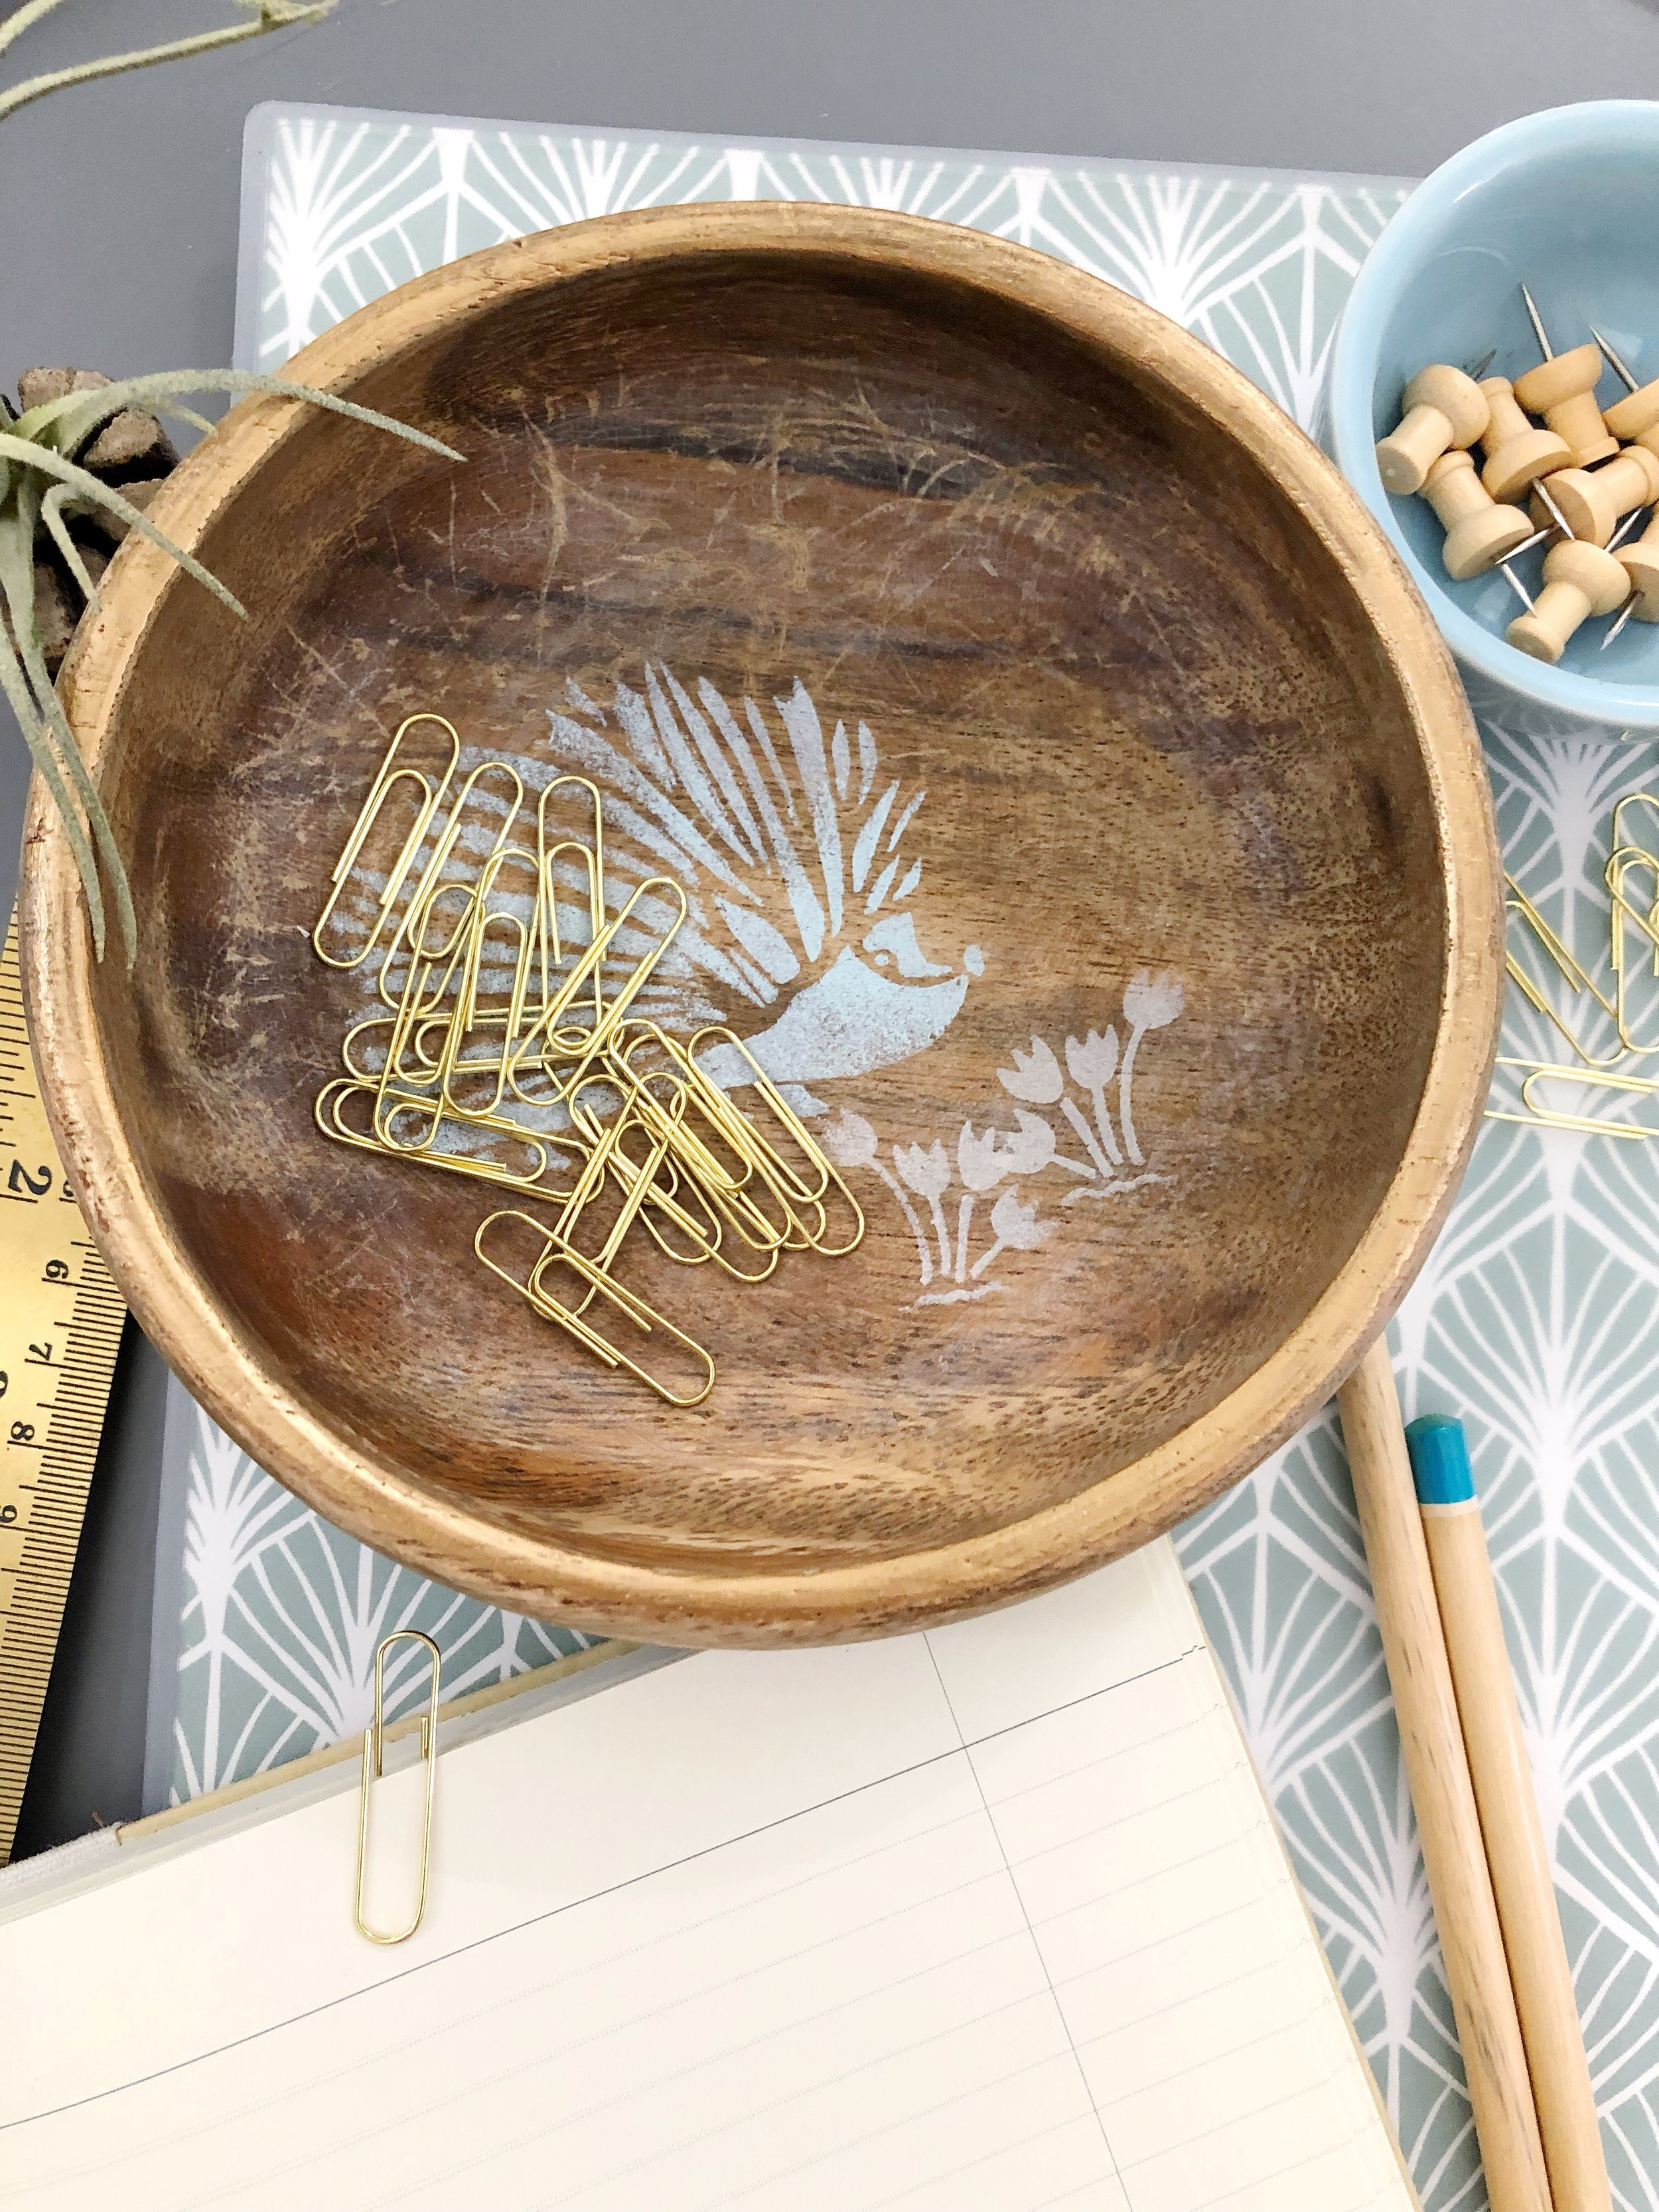 Stenciling tips for beginners. Martha Stewart adhesive stencils. Wooden Bowl up-do. #porcupine #stenciling #acrylicpaint #officesupplies #deskorganization #diy #plaidcrafts #upcycleddiy #stencilcraft #stencilproject